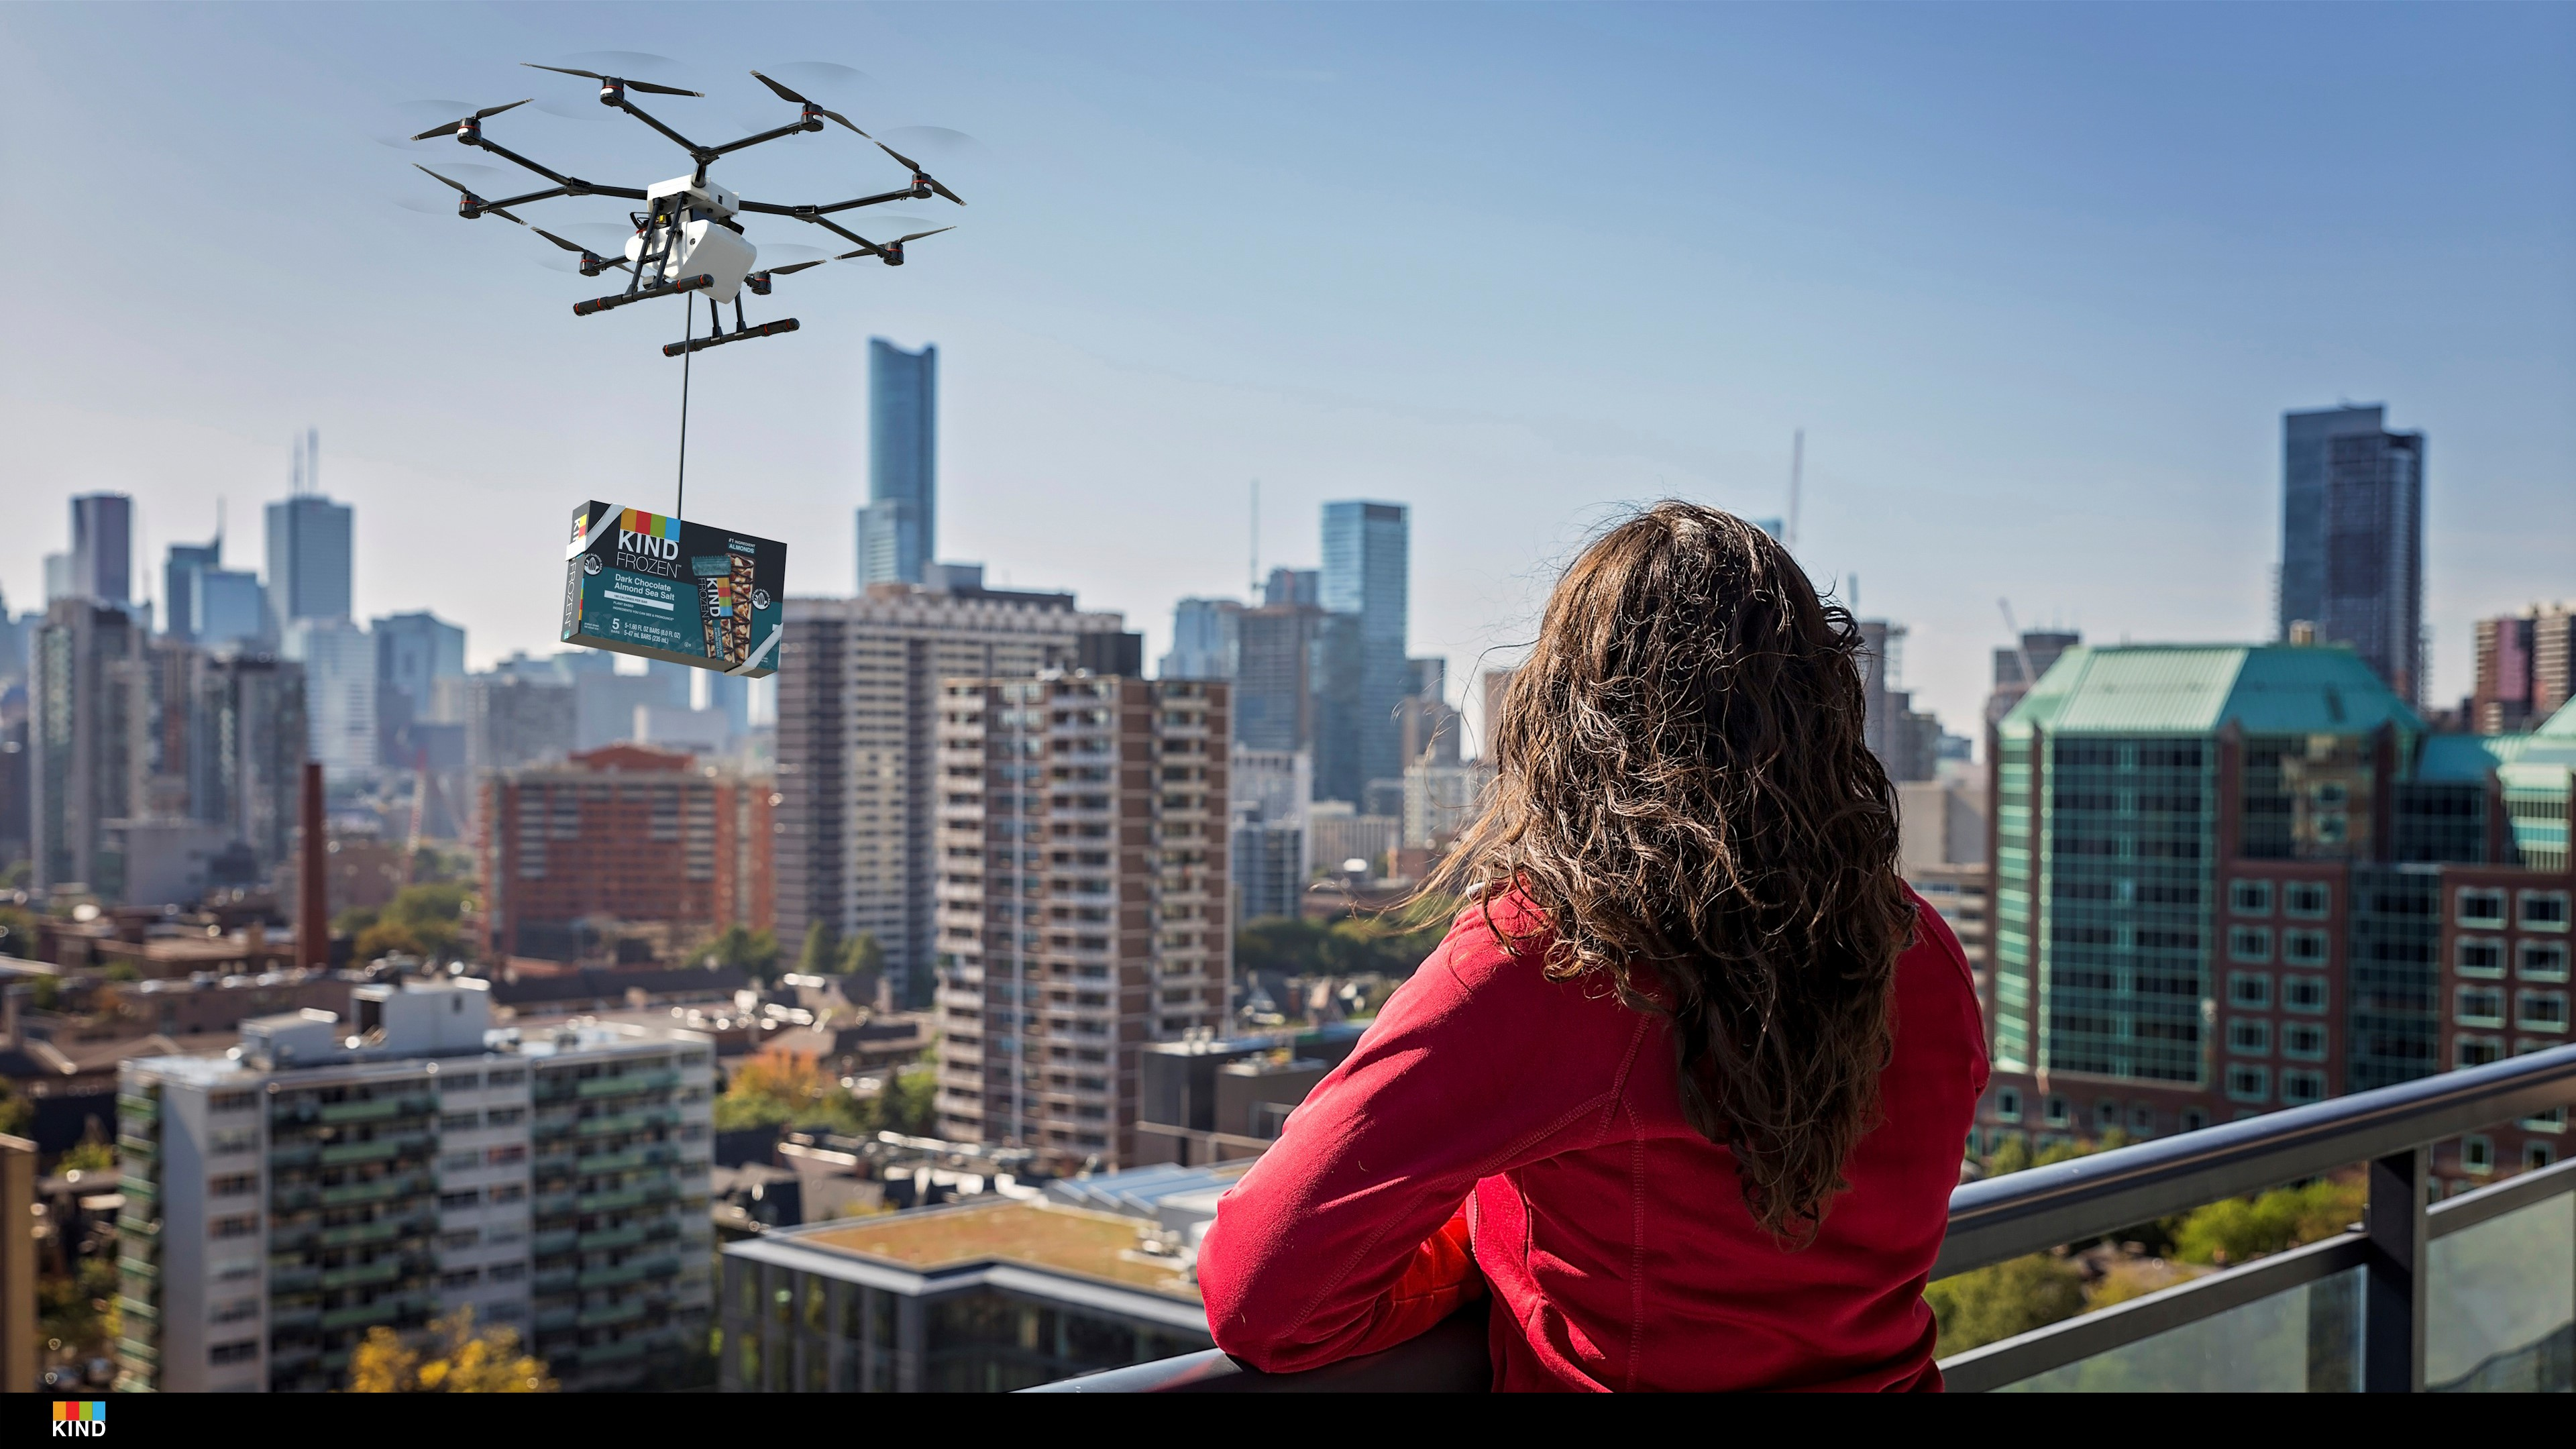 KIND drone delivery